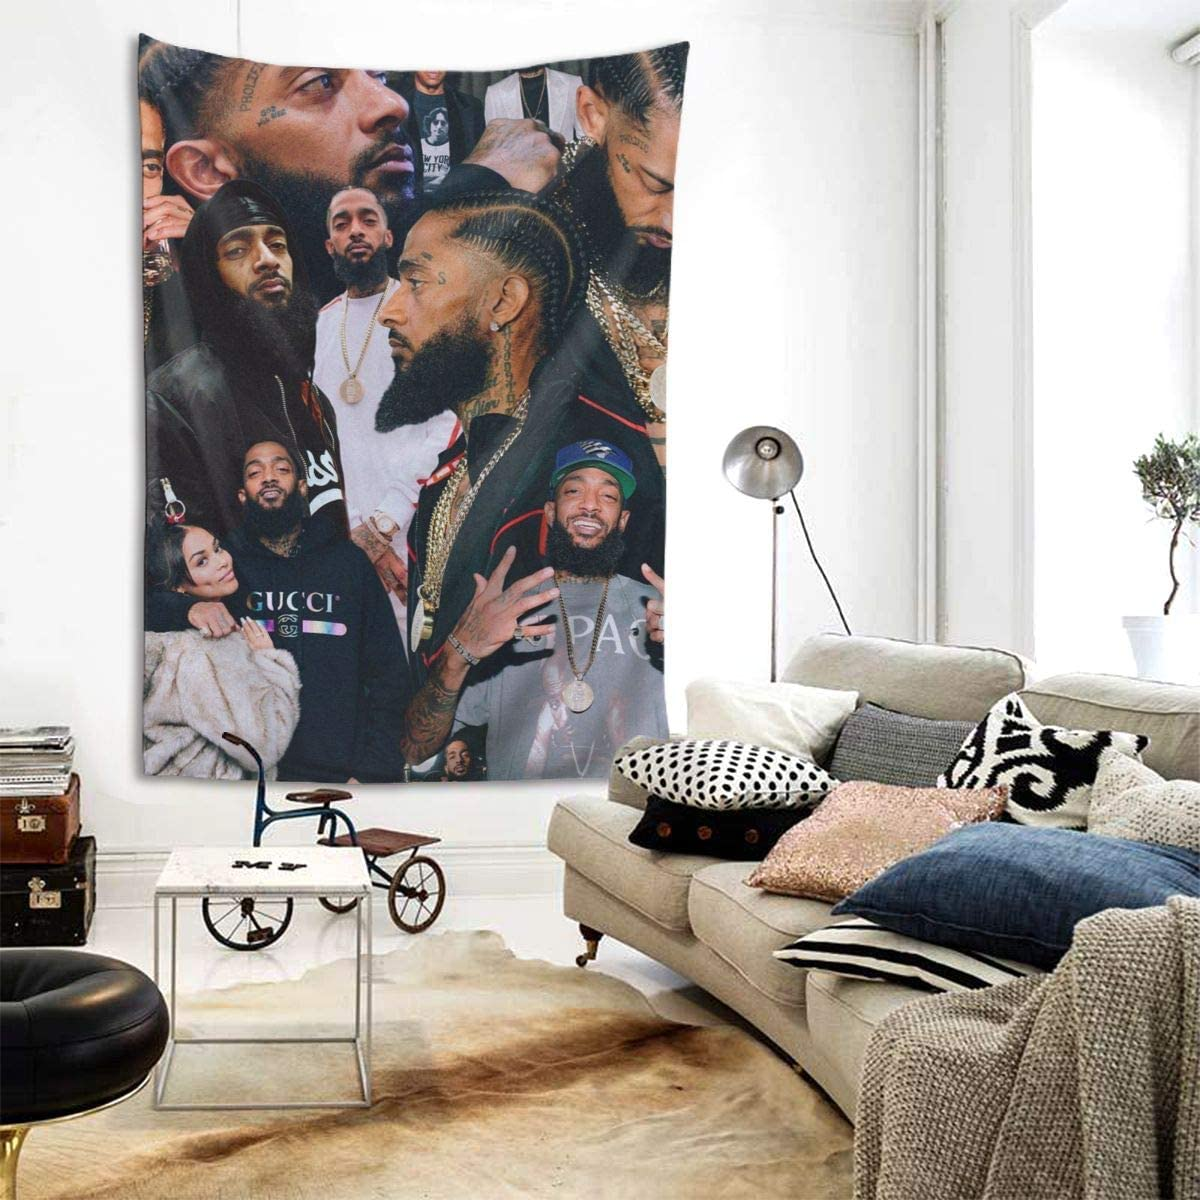 Xaler Nipsey-Hussle Rap R B Hip Hop Tribute Music Tapestry Wall Hanging Home Decorations with Art Print Mural for Living Room Bedroom Dorm Decor in 80 X 60 Inches